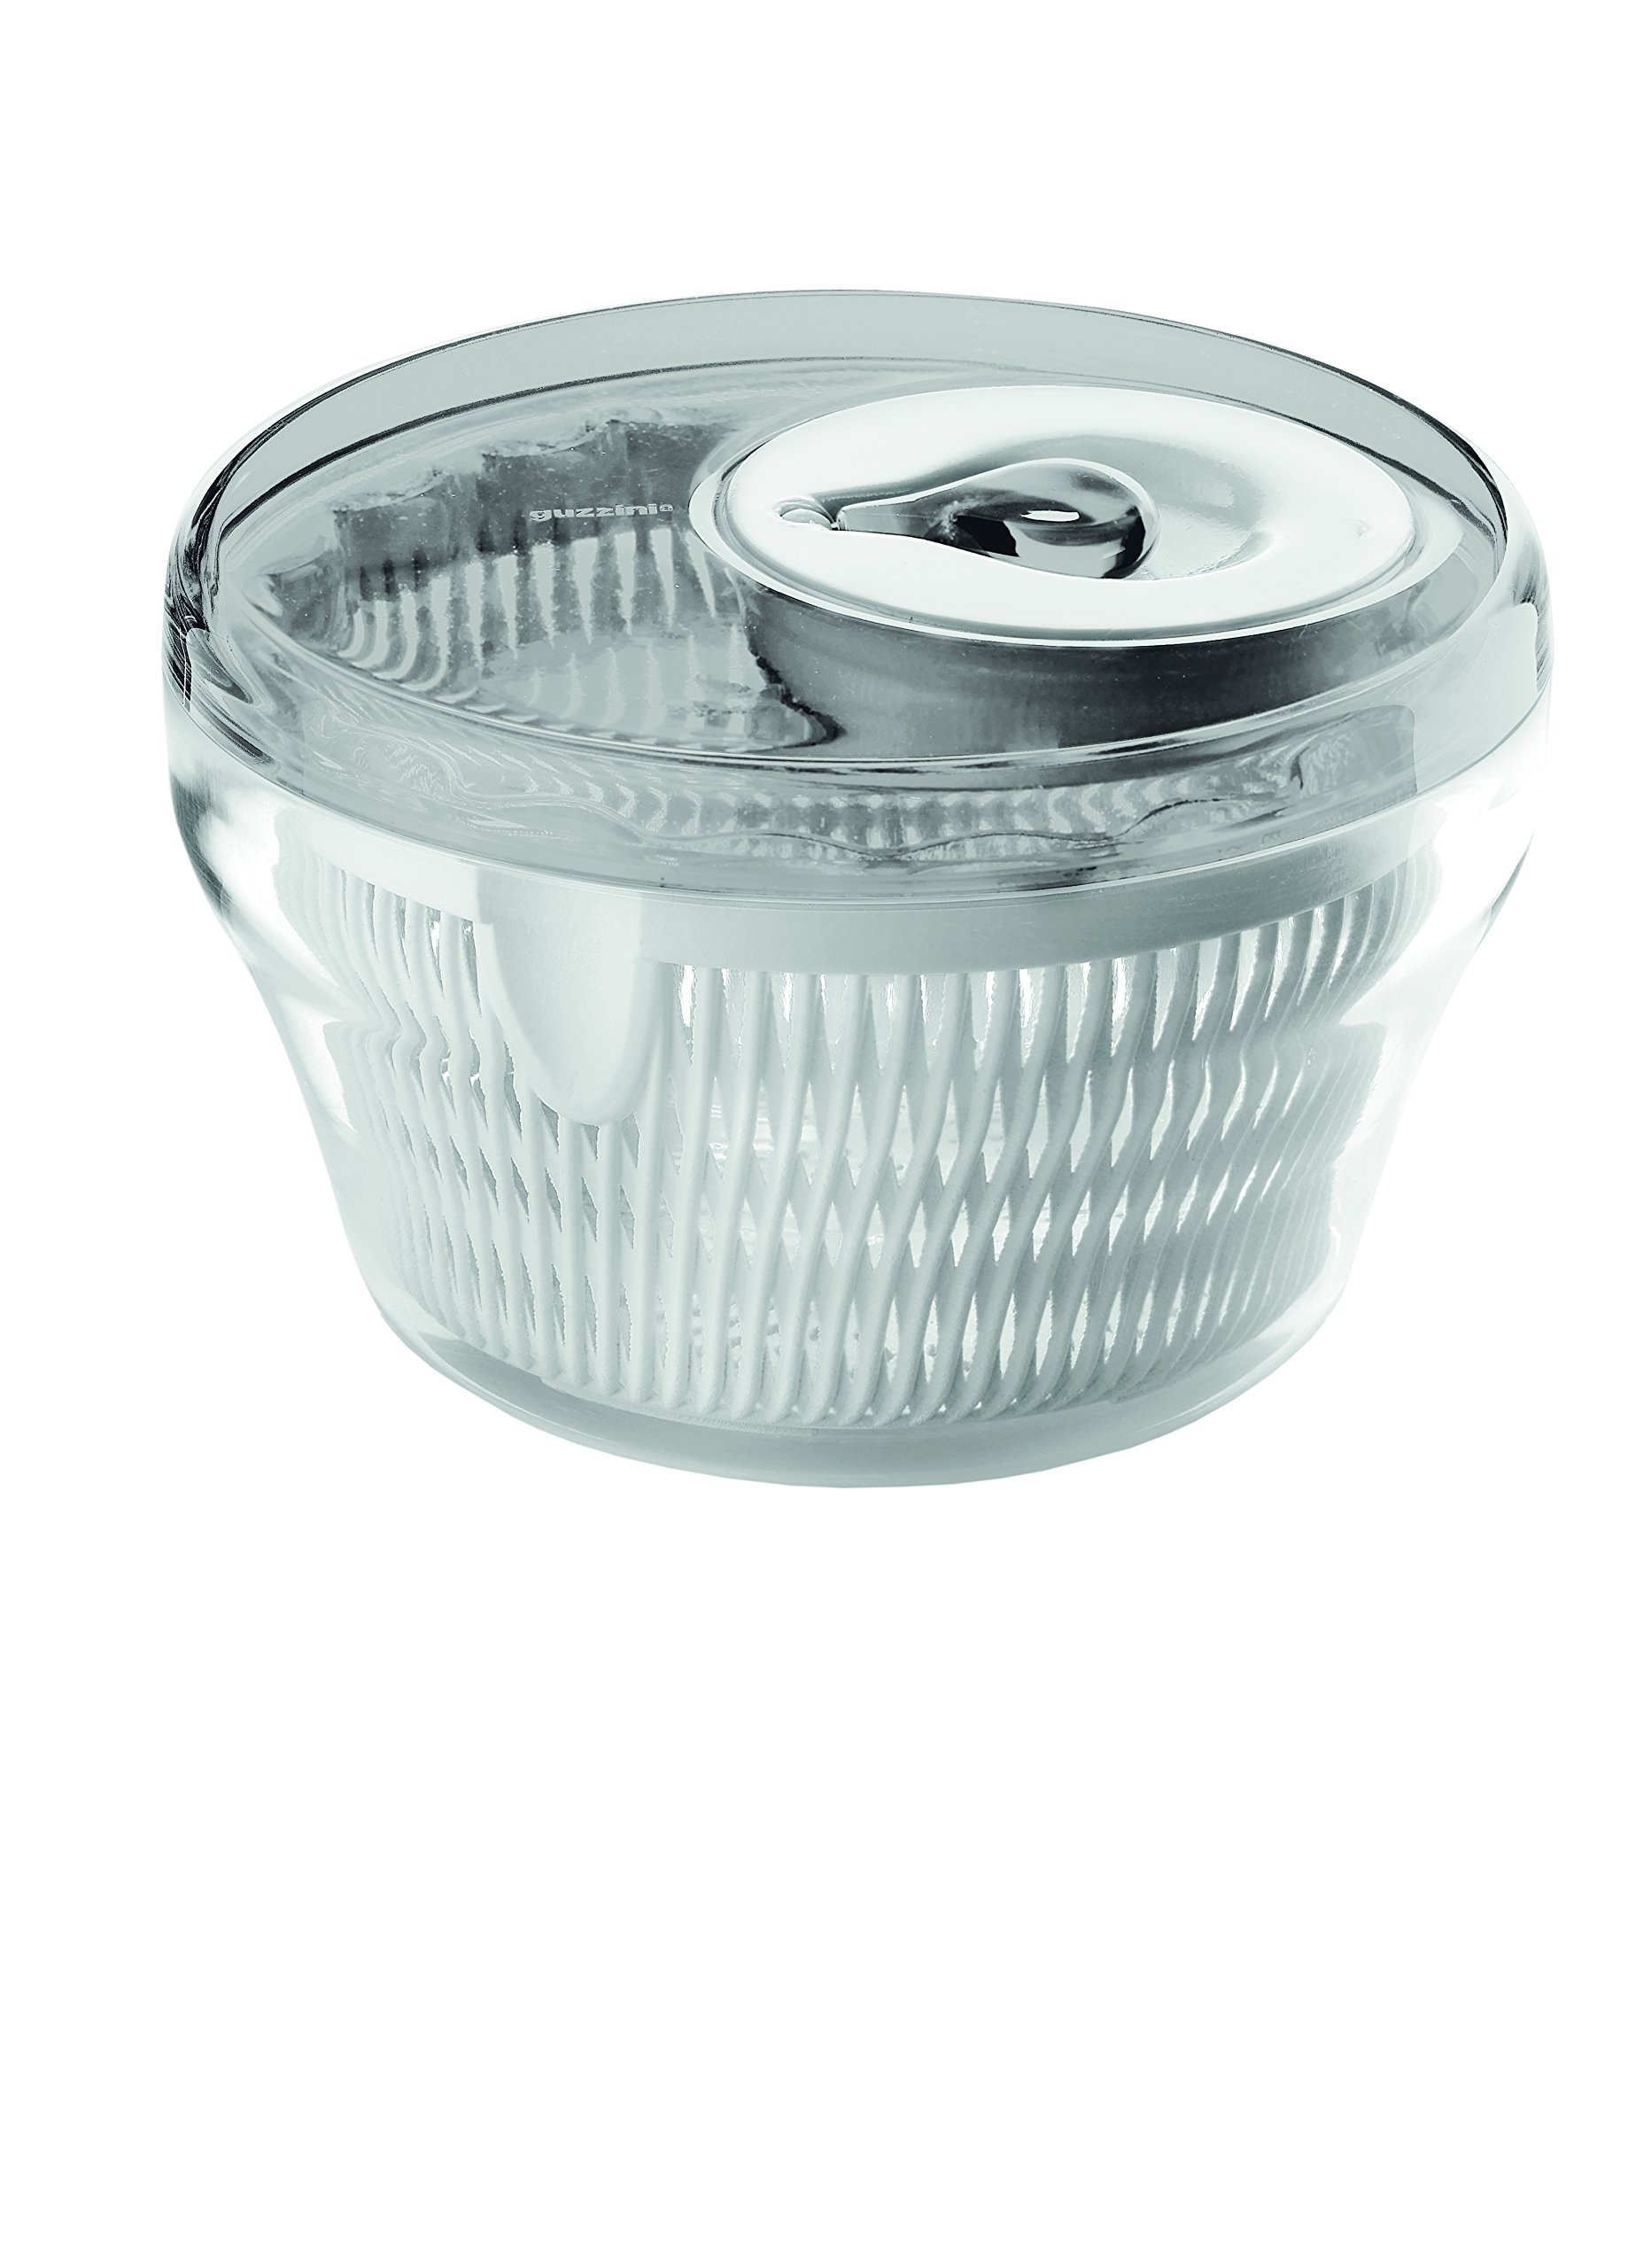 Guzzini Salad Spinner, 11-Inches, Grey by Guzzini